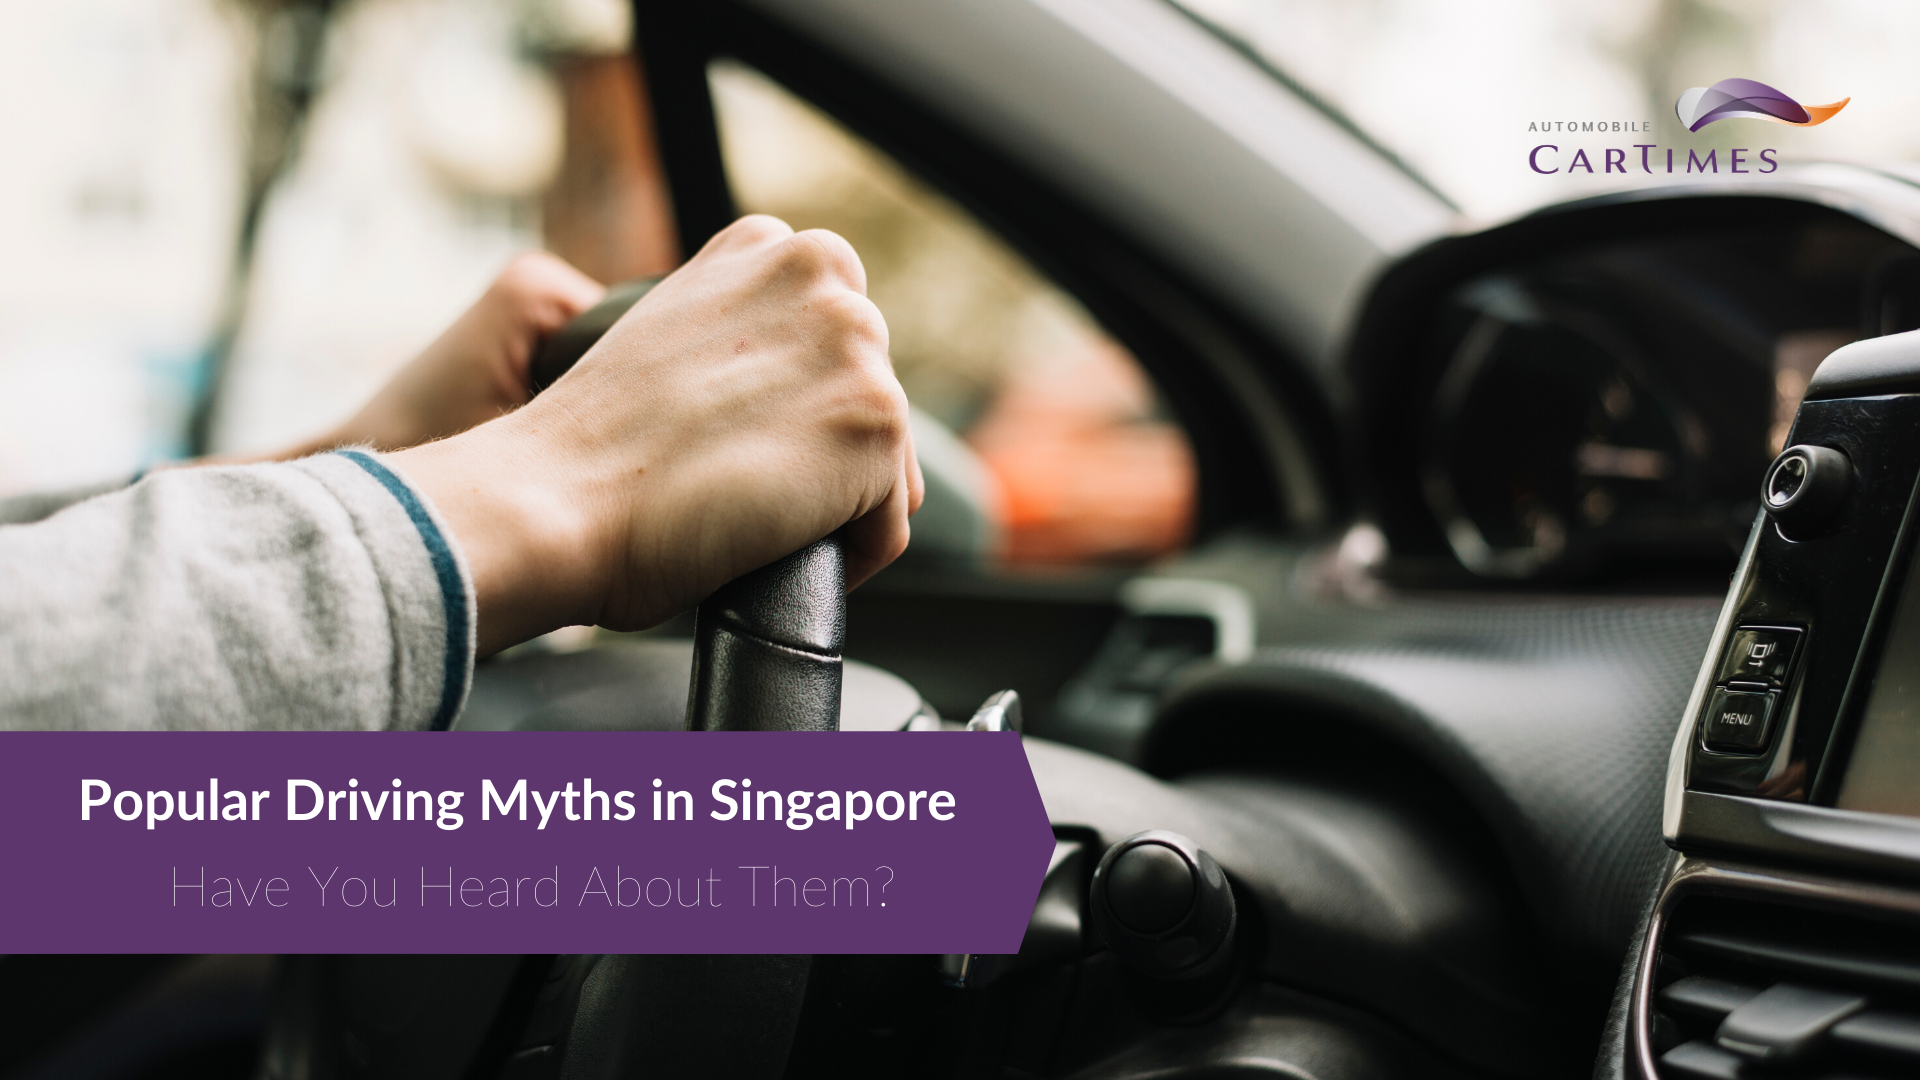 Popular Driving Myths in Singapore - Have You Heard of Them? General